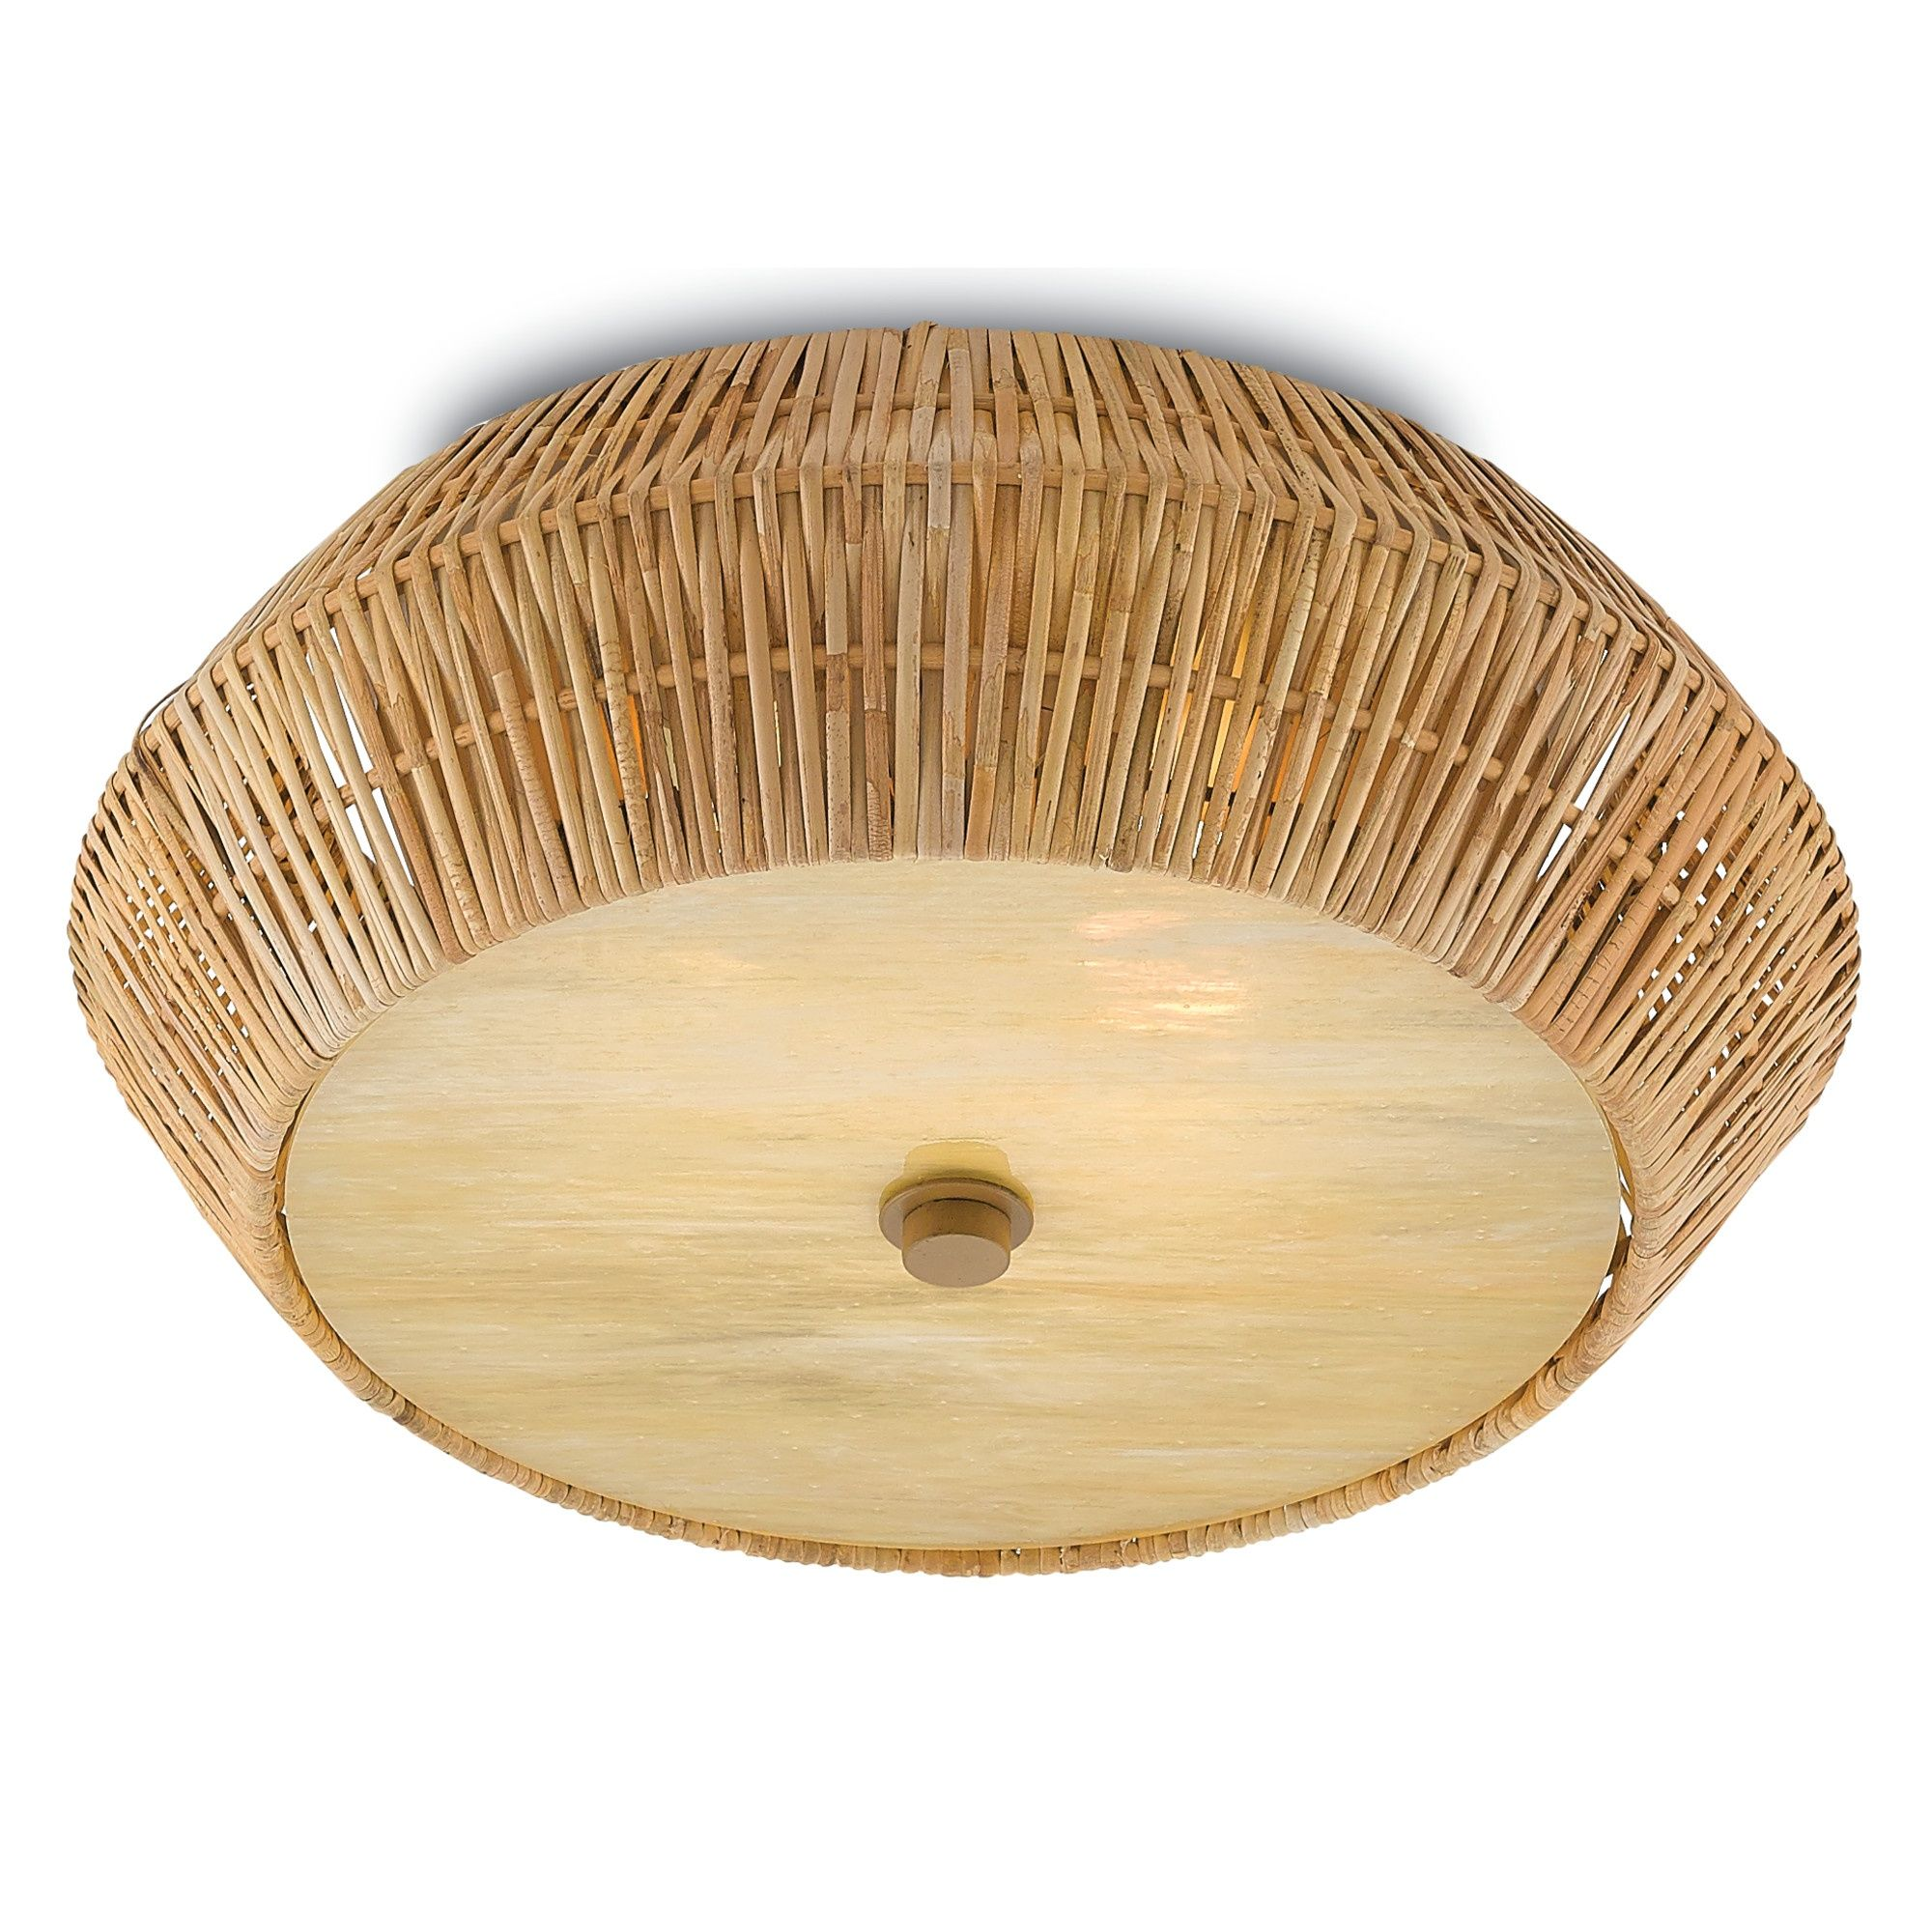 Rattan And Glass Flush Mount Two Lights With GU24 Bulb Type Maximum Wattage 26 Rec RoomsDining